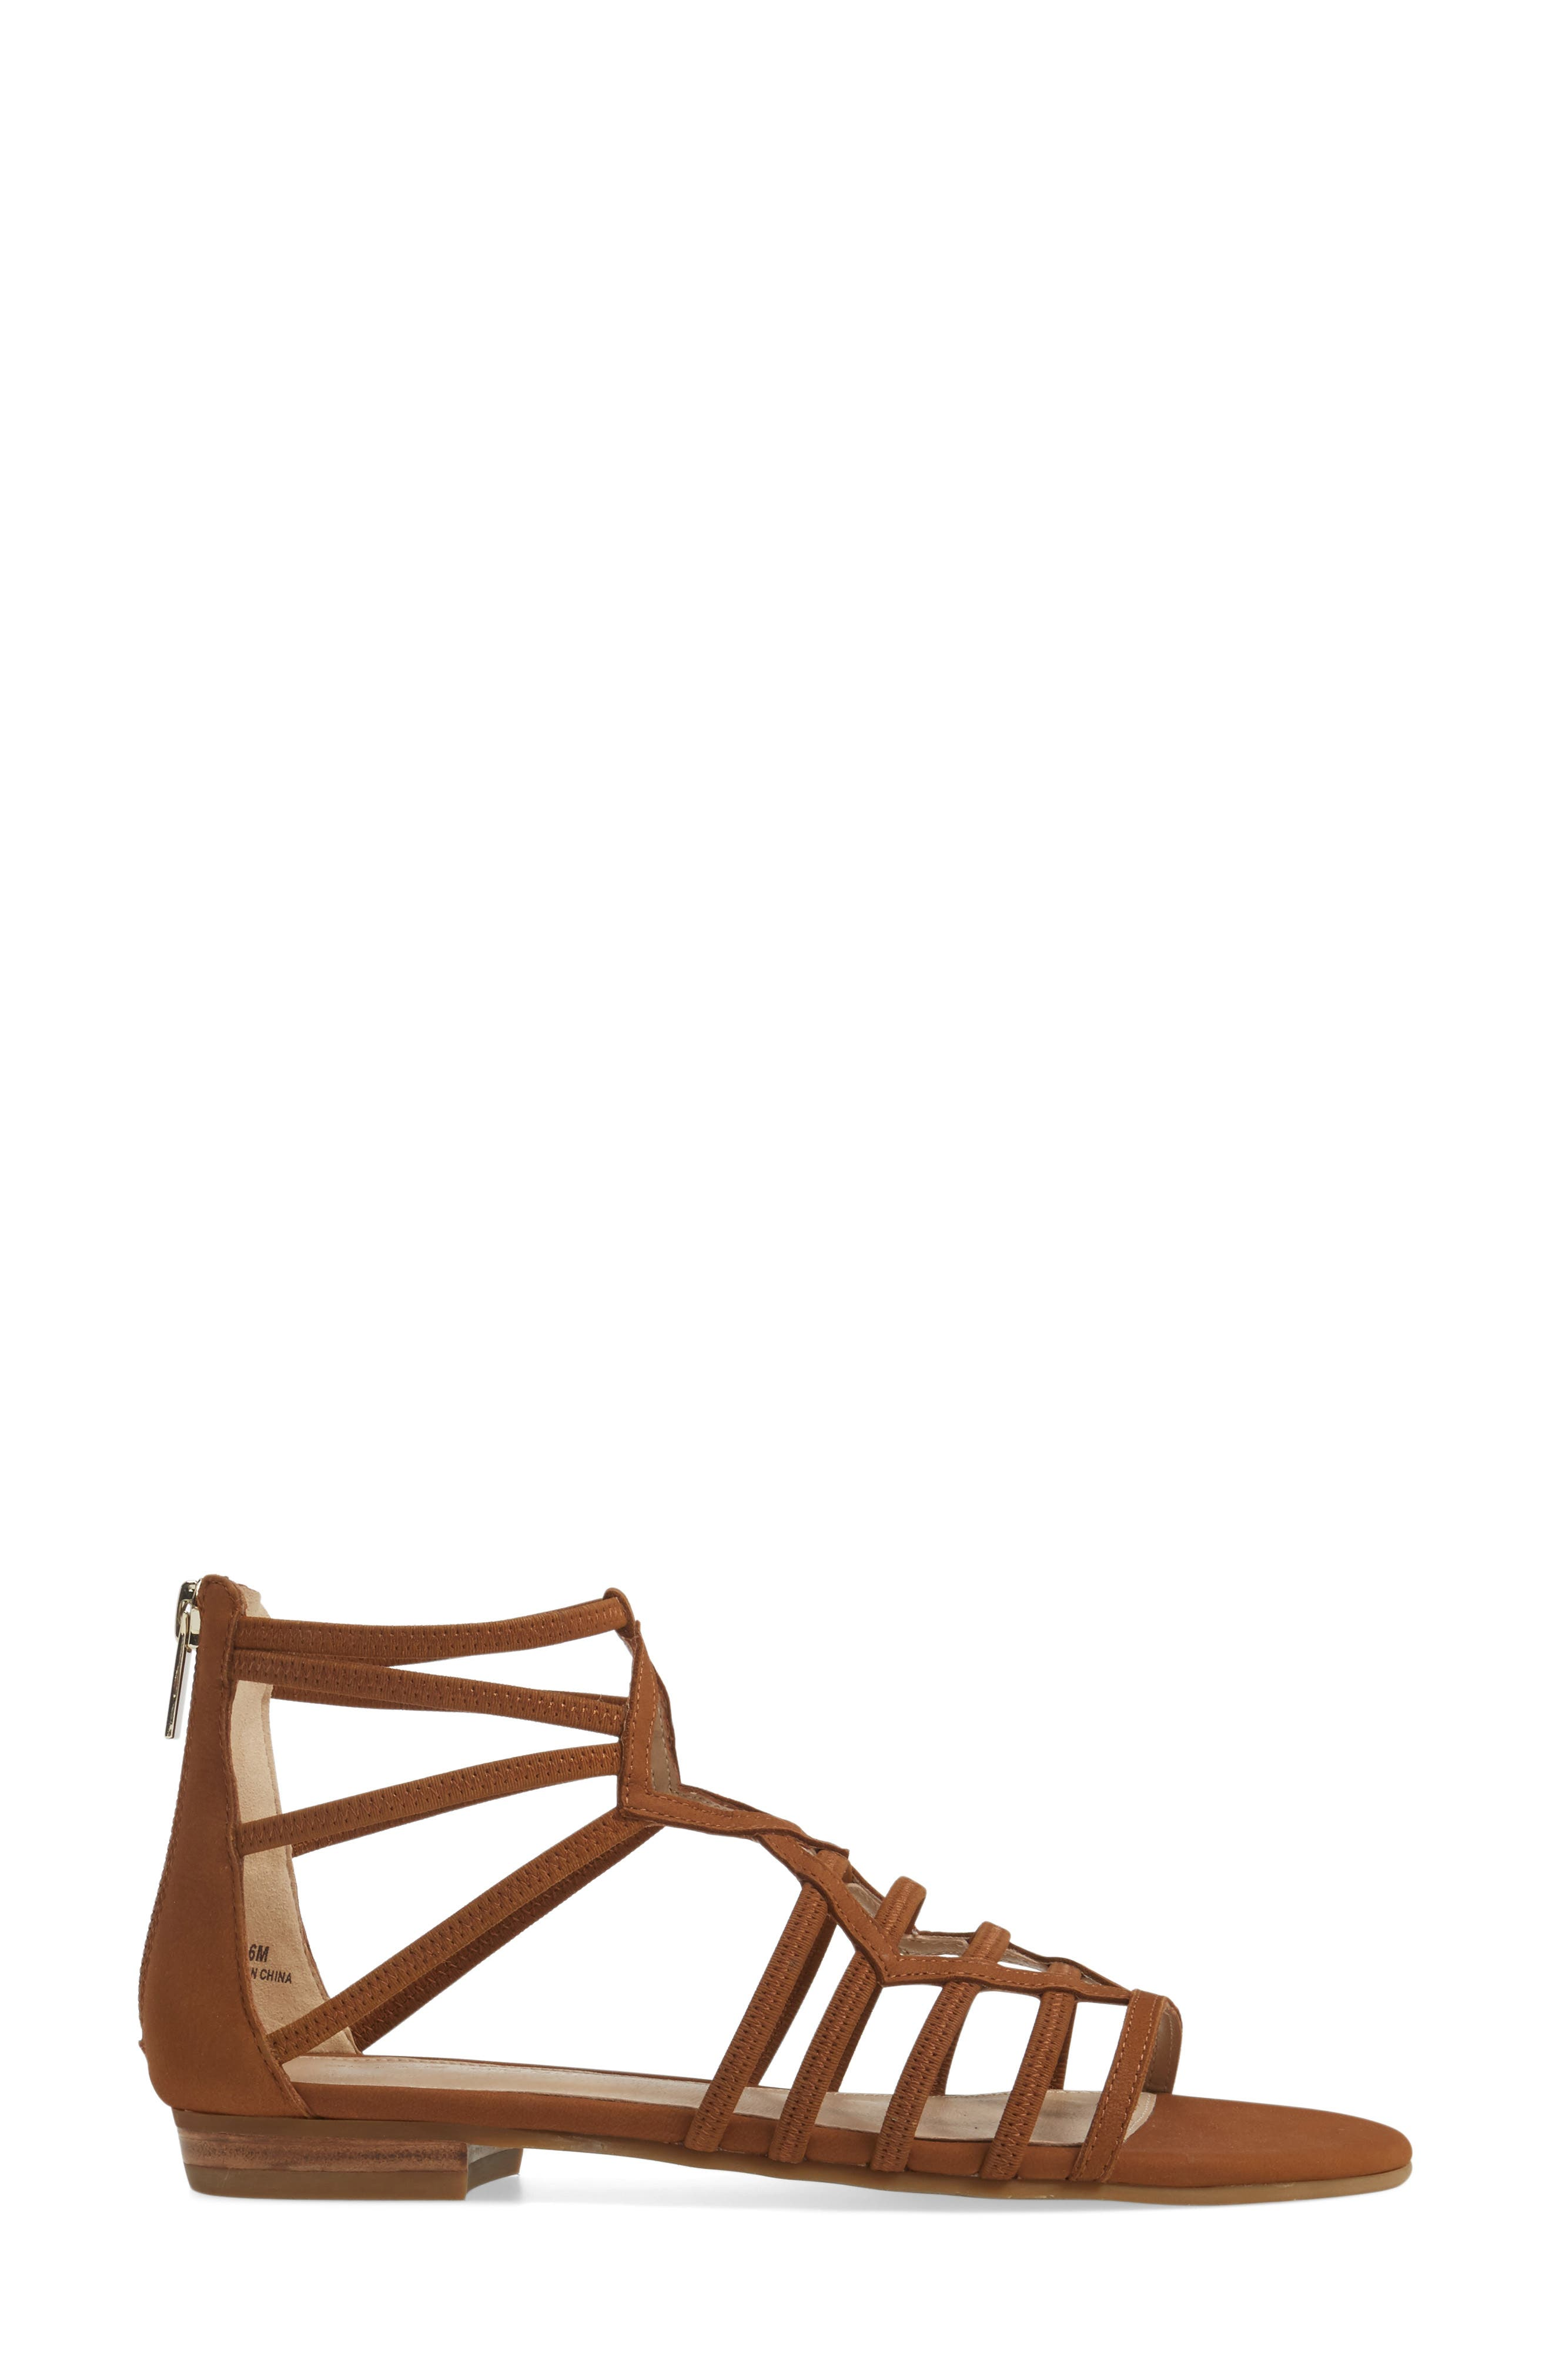 Brazil Strappy Sandal,                             Alternate thumbnail 3, color,                             Luggage Leather